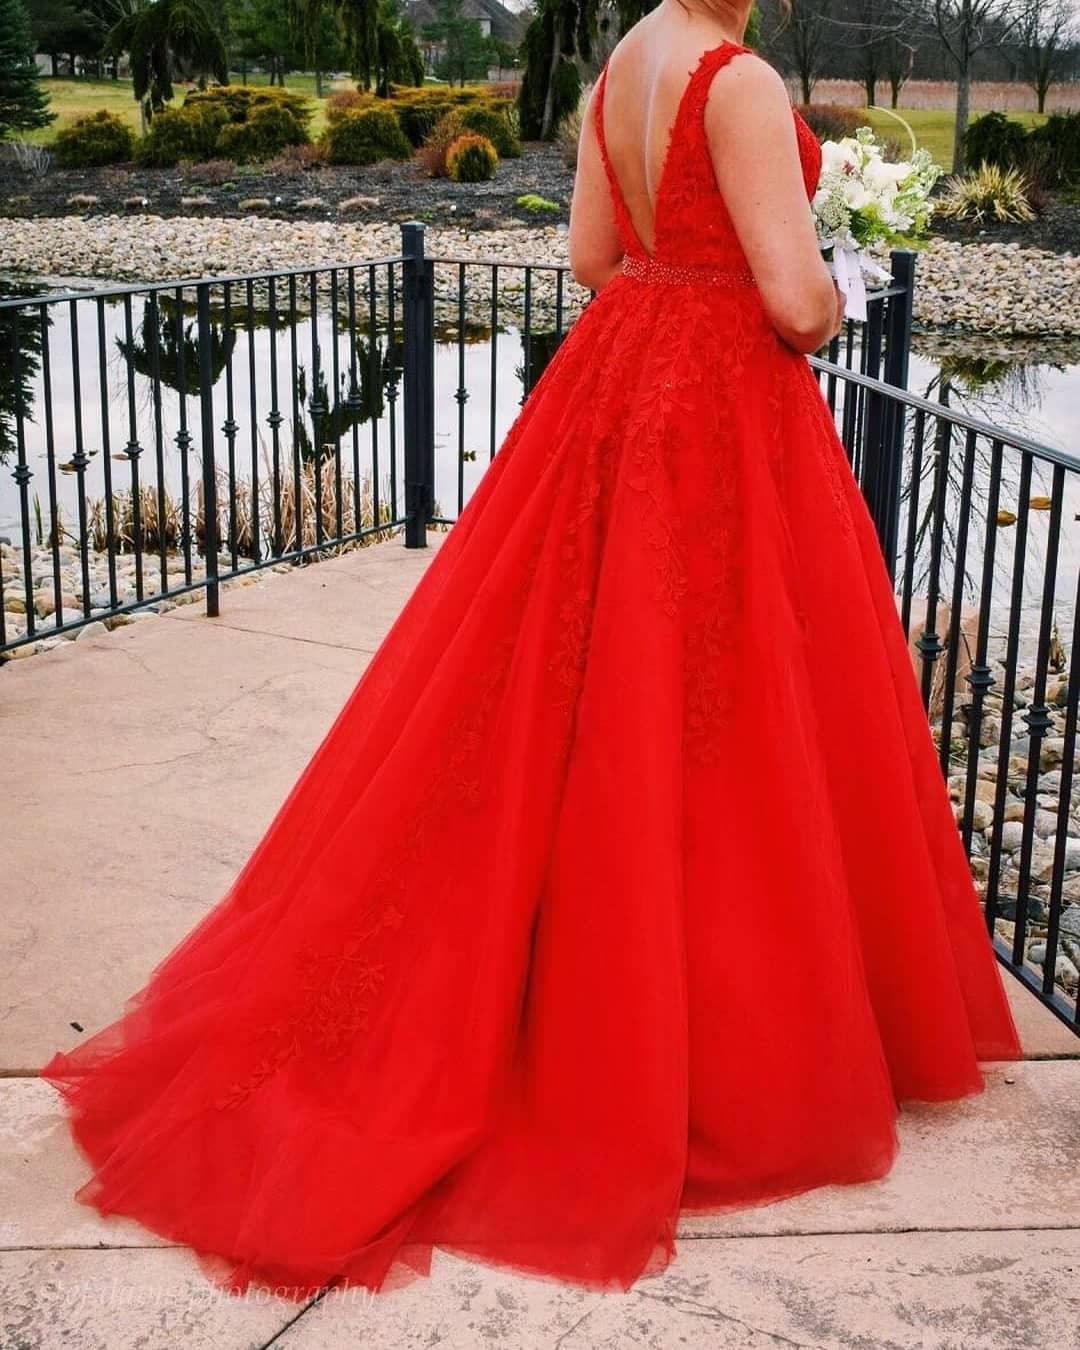 Plus Size Prom Dress,Ball Gown Red Prom Dress,Lace and Tulle Pageant Dress  from Sancta Sophia